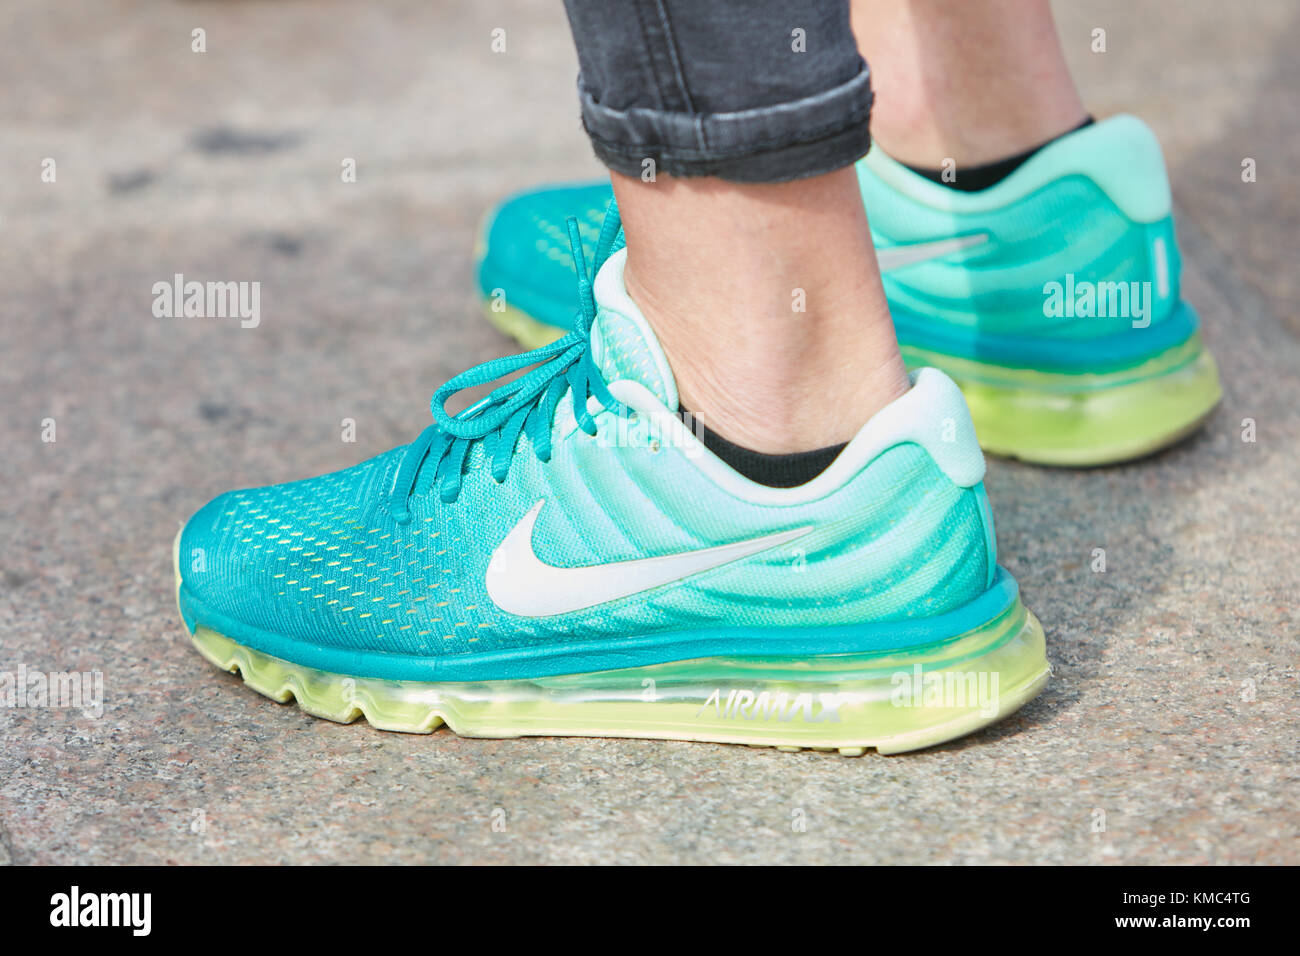 finest selection ddd8e 1c426 ... new zealand milan september 23 man with turquoise nike airmax shoes  with yellow soles before gabriele